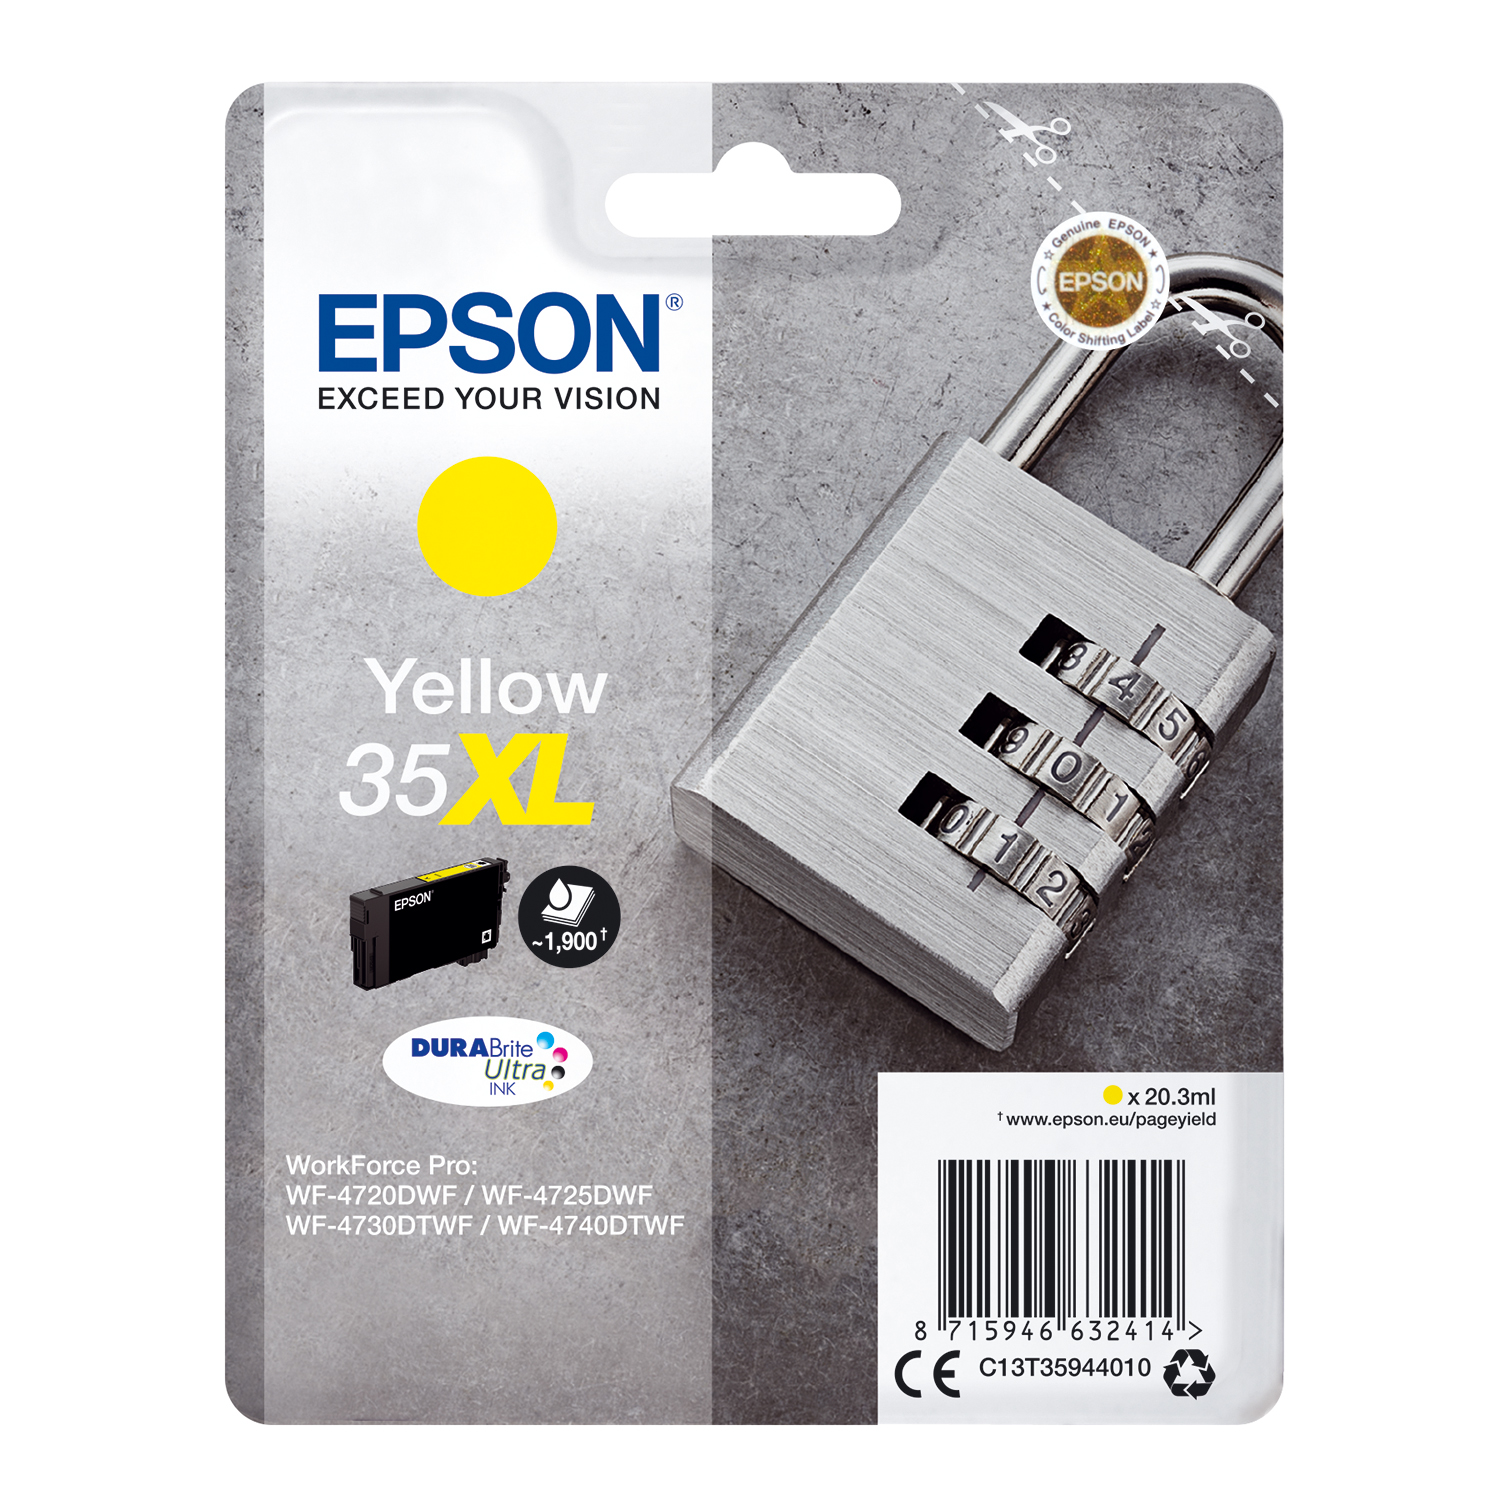 Ink cartridges Epson 35XL Inkjet Cartridge High Yield Page Life 1900pp 20.3ml Yellow Ref C13T35944010